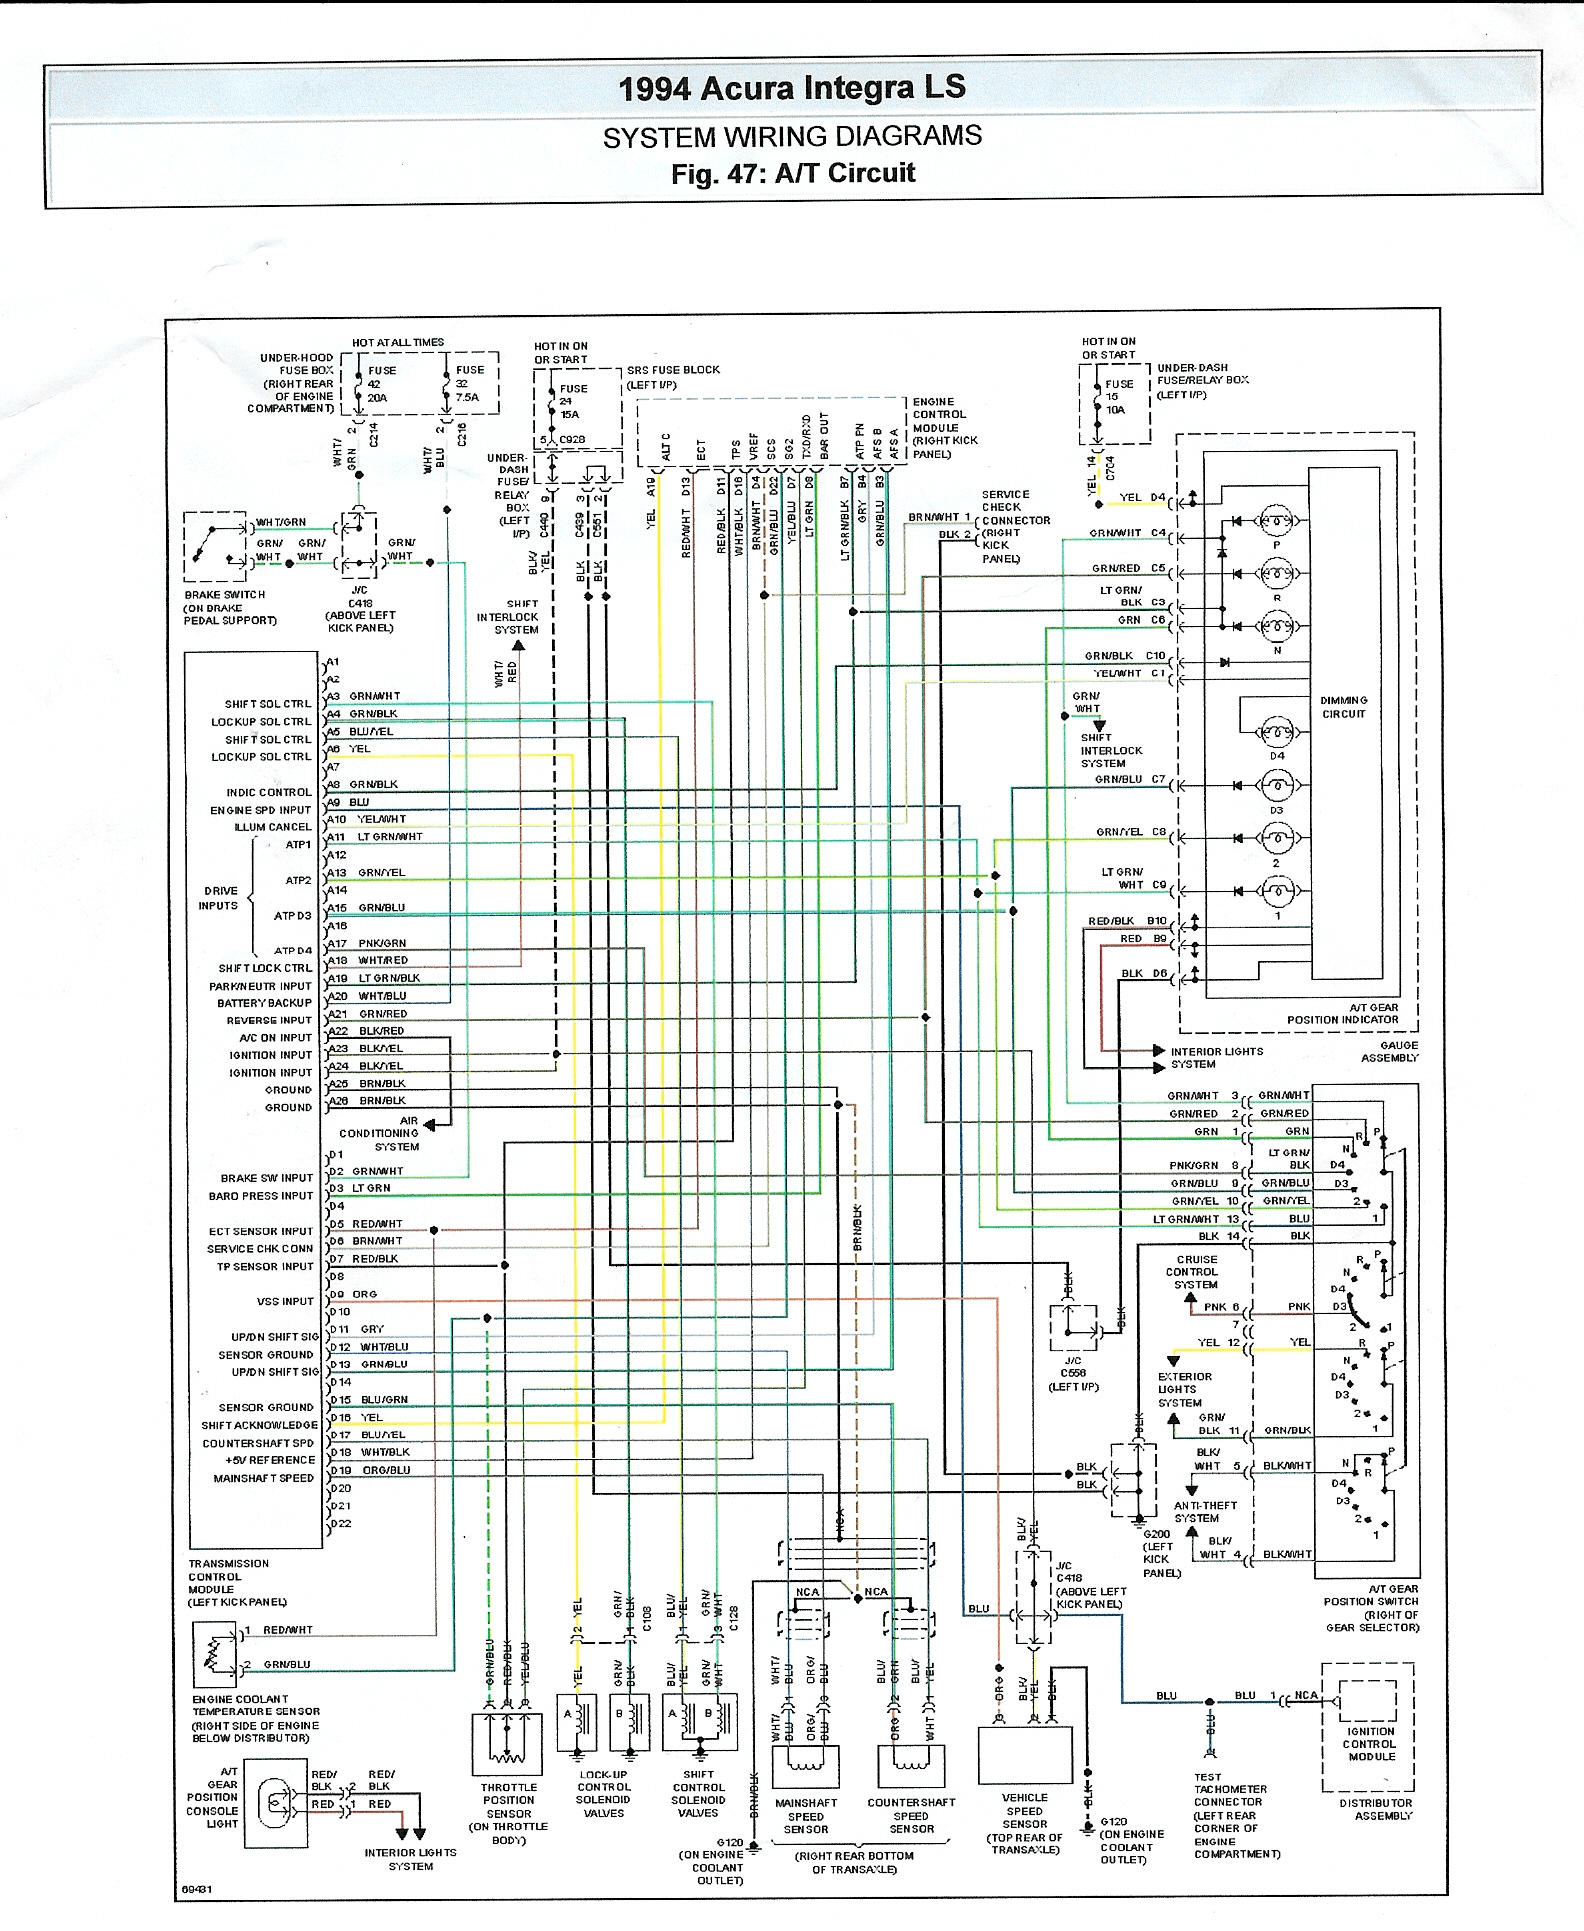 1994 acura integra wiring diagram schematic simple wiring schema 1993 cadillac seville wiring diagram 1993 acura legend belt diagram wiring schematic [ 1584 x 1931 Pixel ]